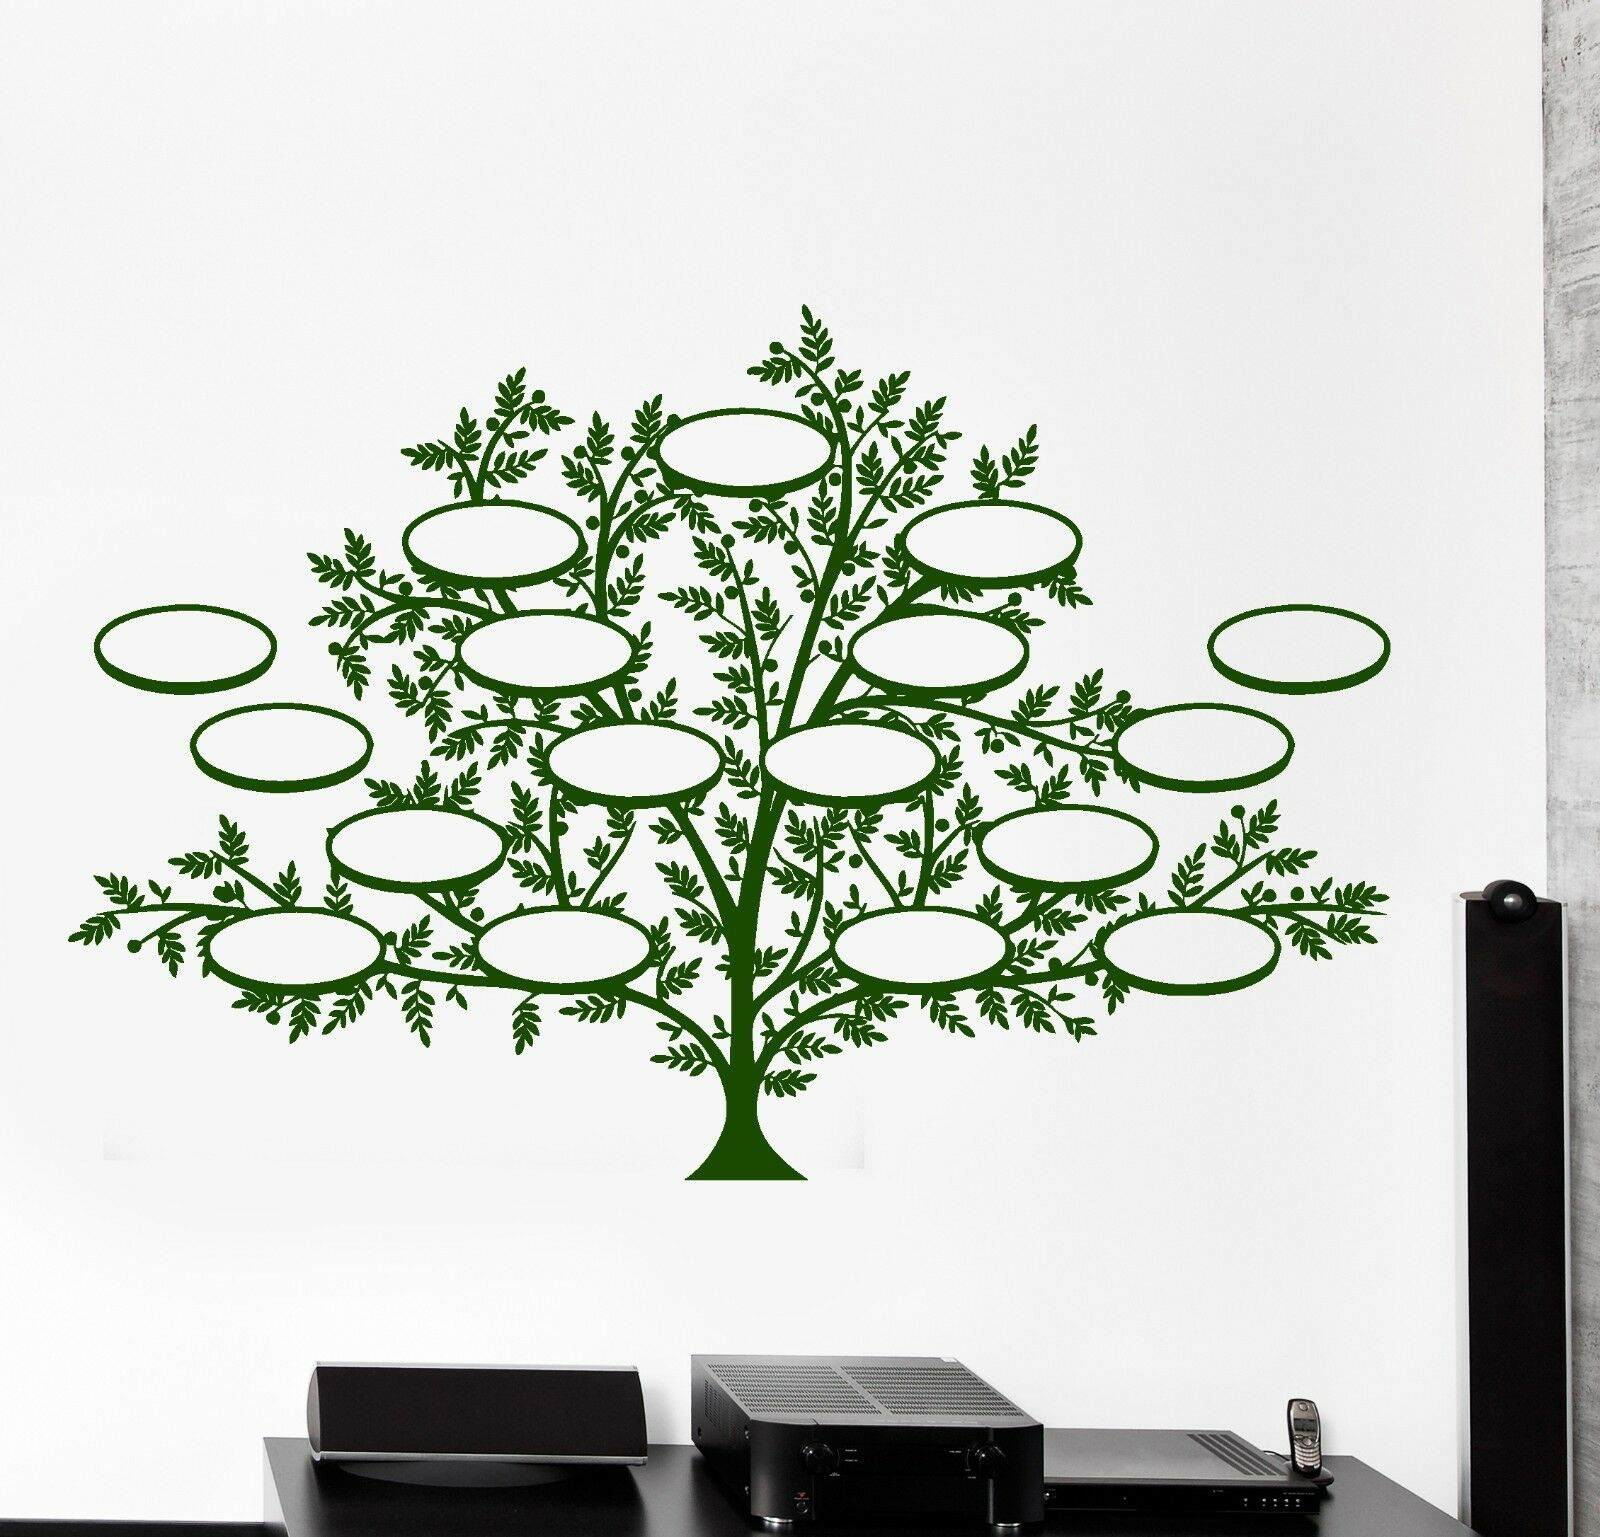 Wall Vinyl Decal Family Tree Picture Memory Cool Amazing Decor Mural z3907